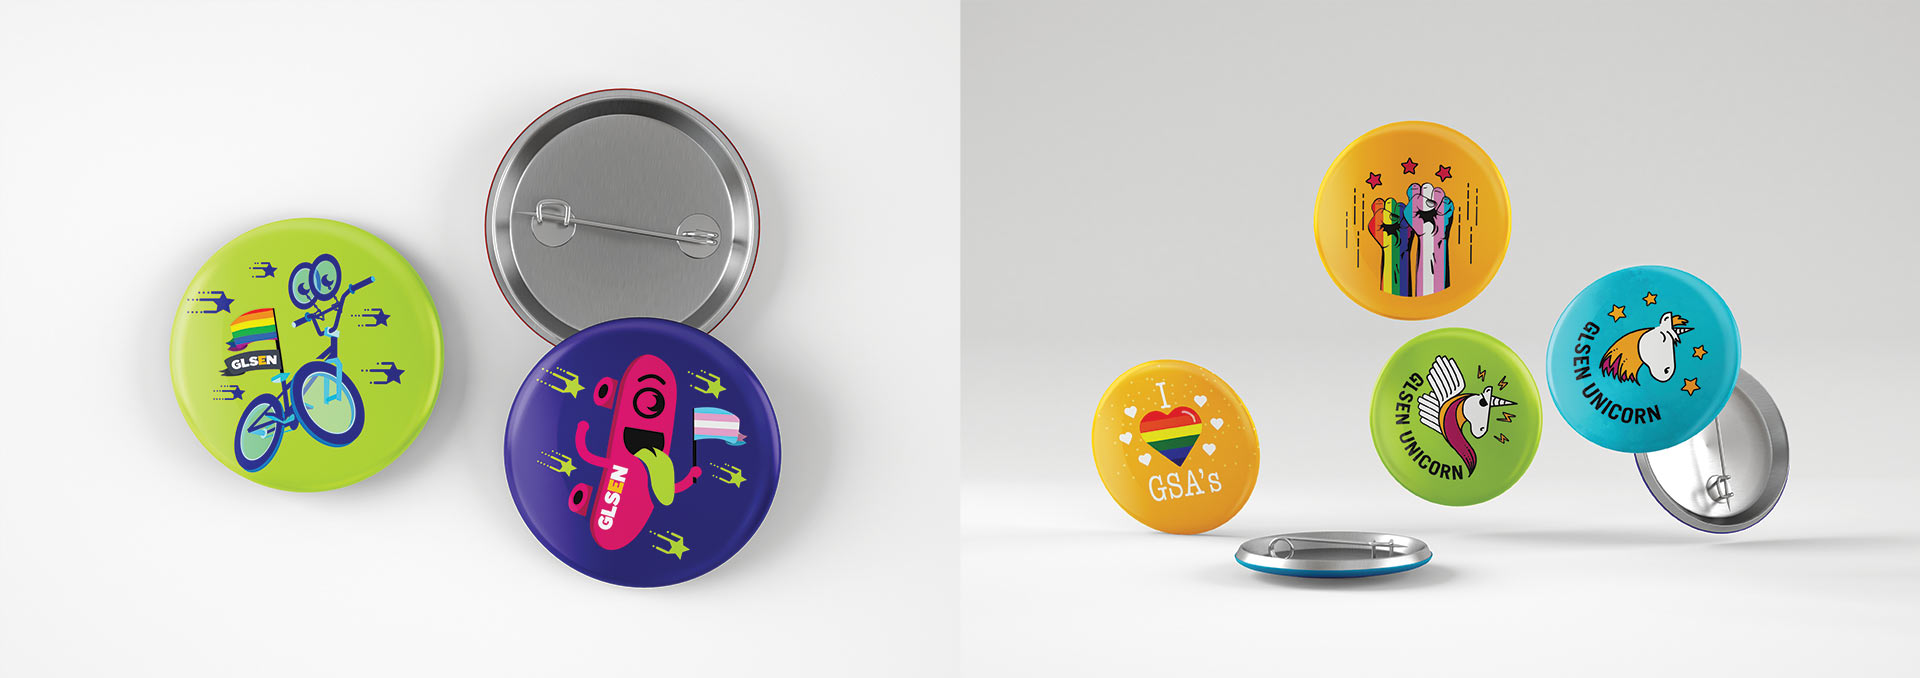 Various illustrated pins on buttons mockups